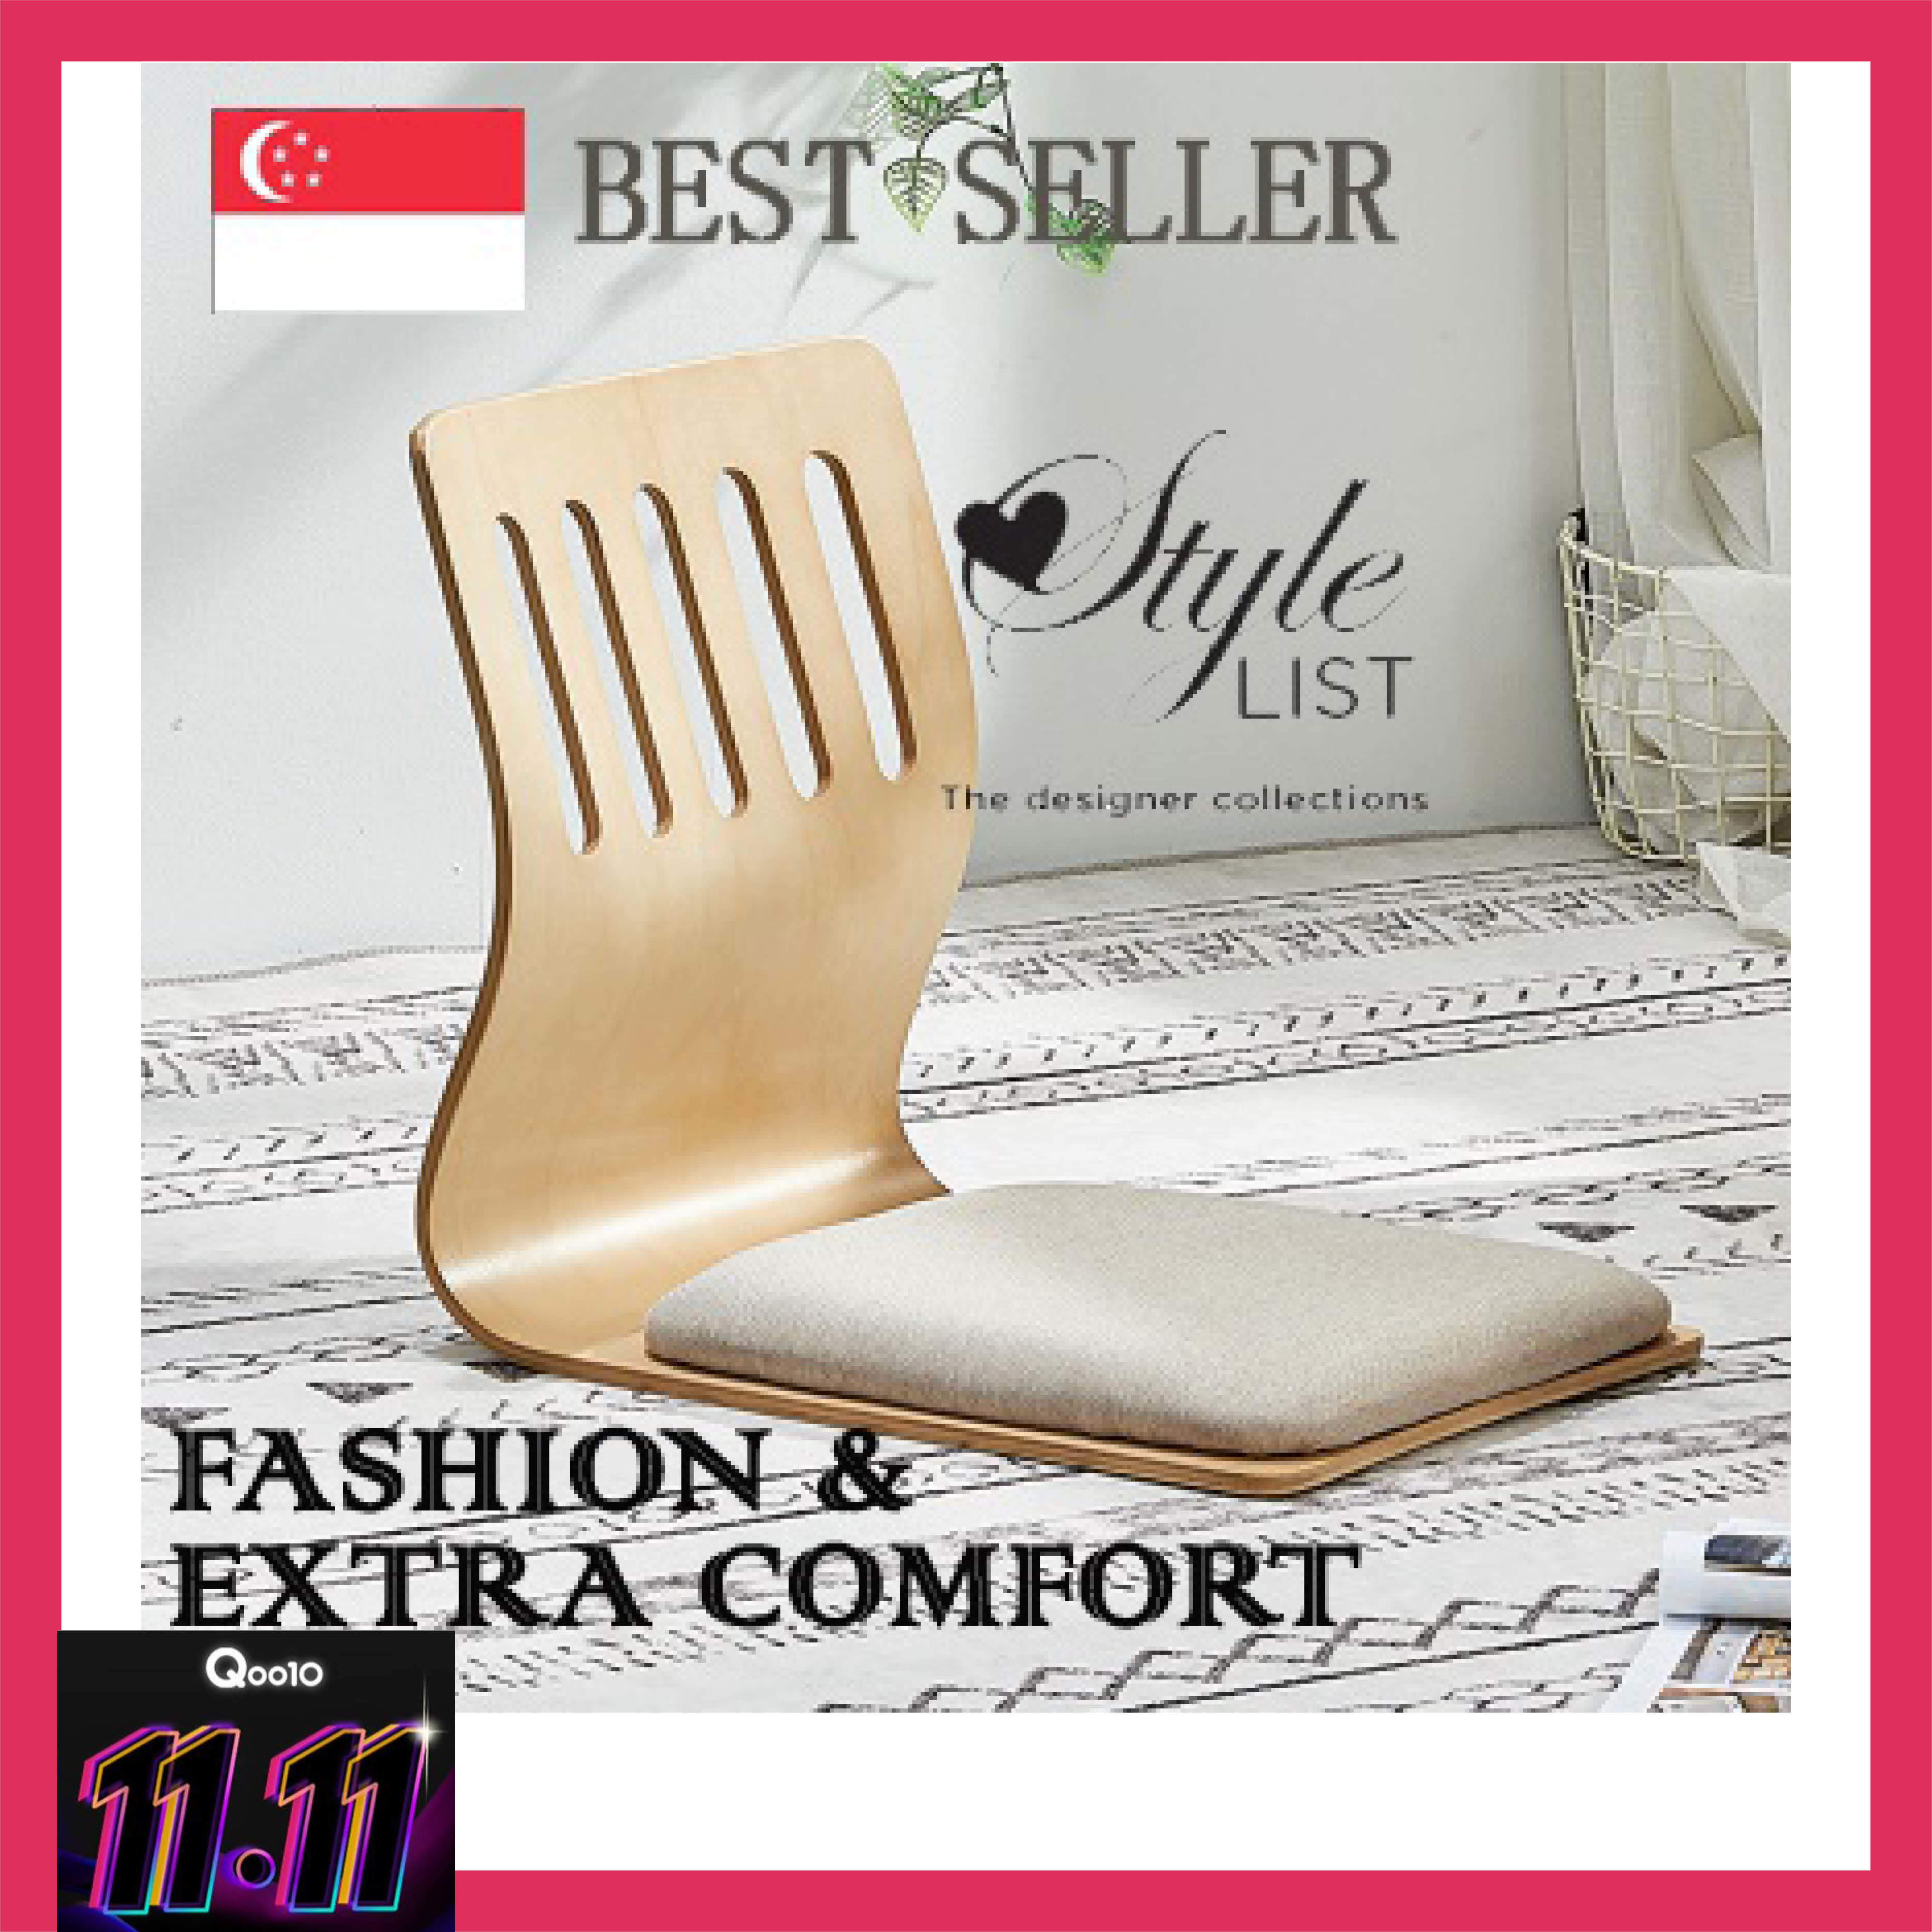 Padded Foldable Floor Seating Padded Floor Chair with Back Support Thick Seat Cushion Lazy Lounge Sofa 咖啡